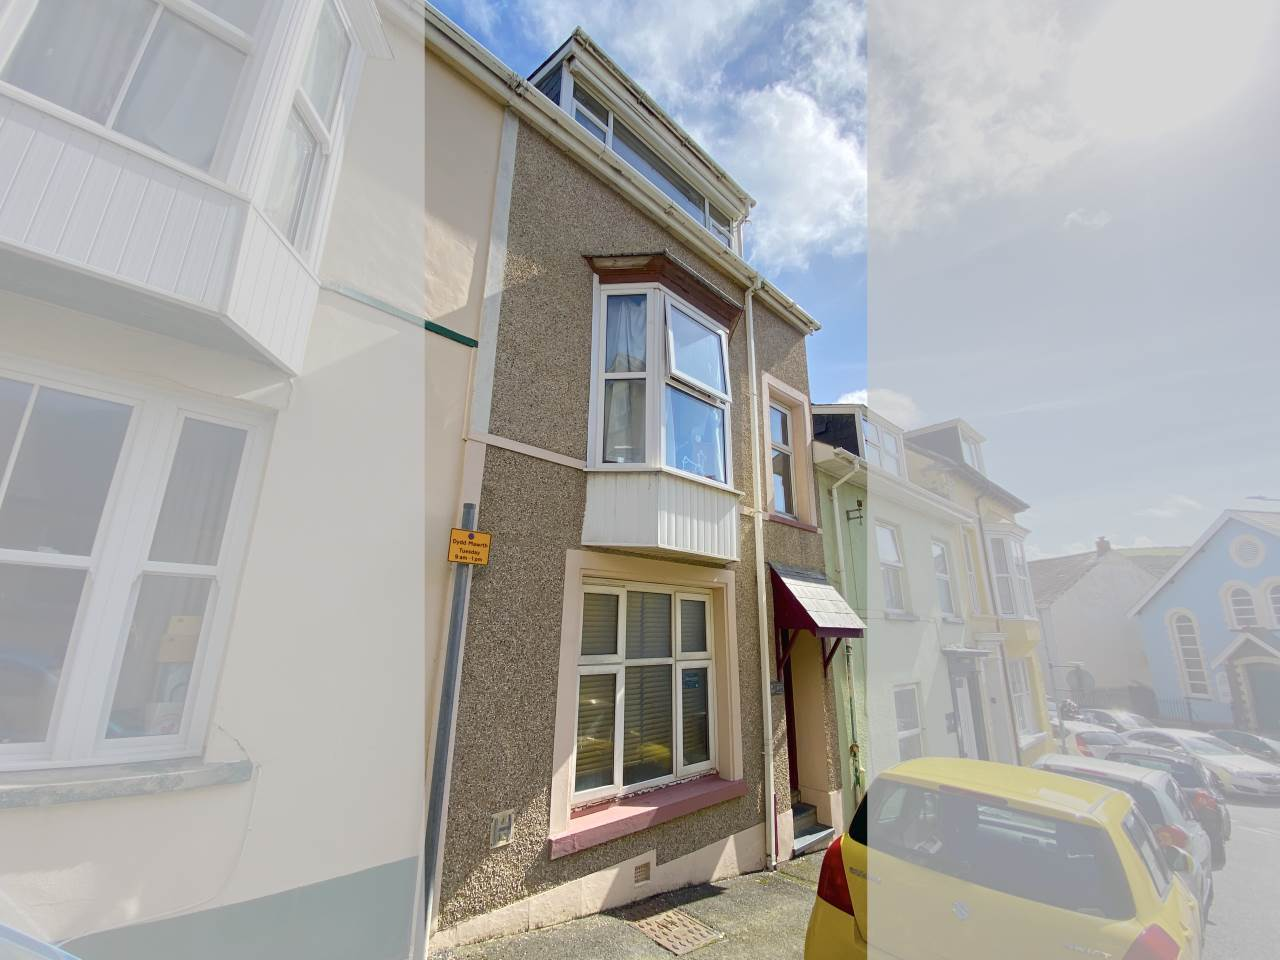 5 bed house to rent in Prospect Street, Aberystwyth, SY23